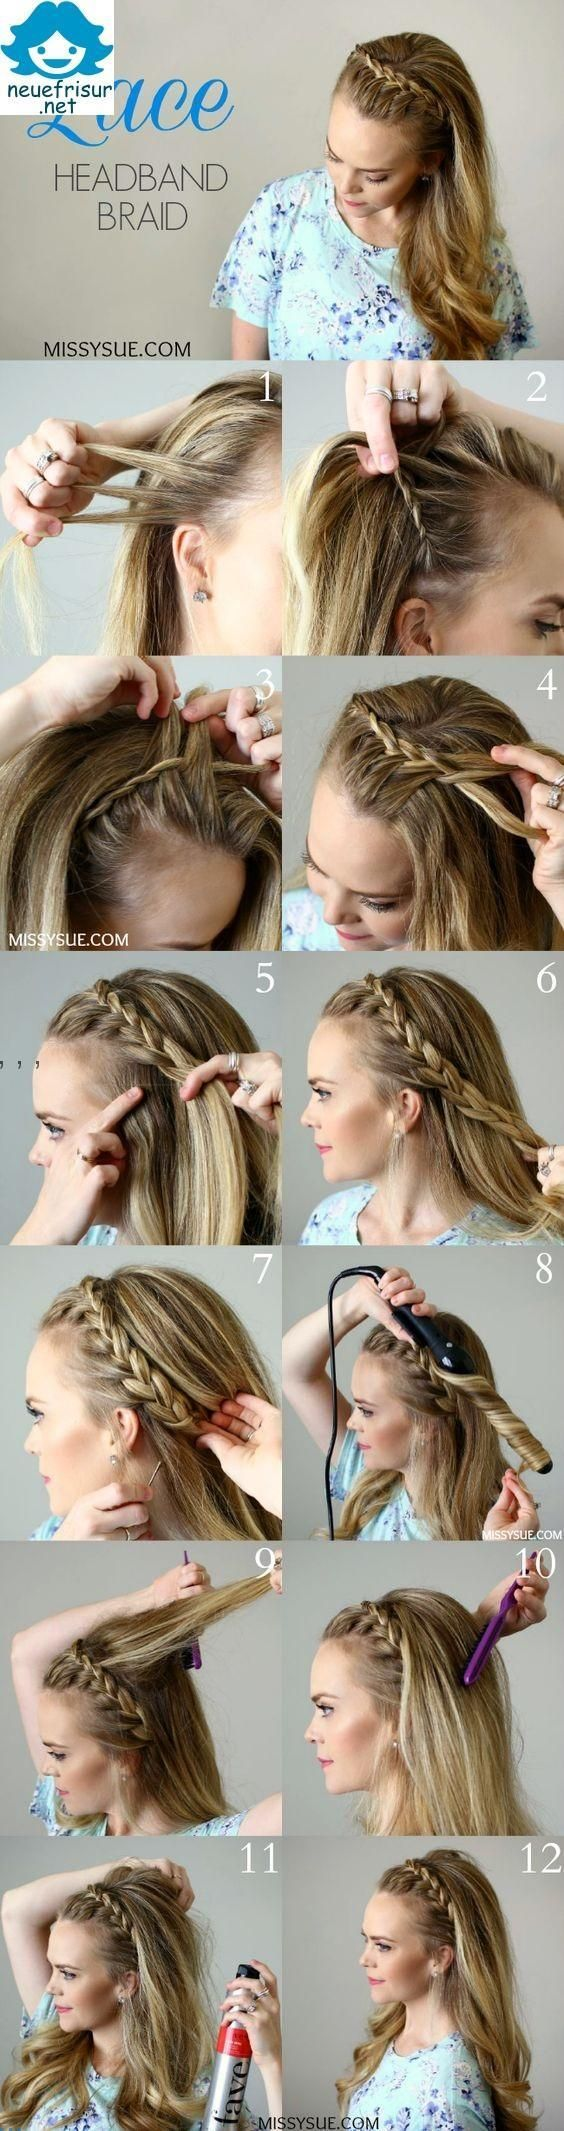 Lace Headband Braid Separate Hair